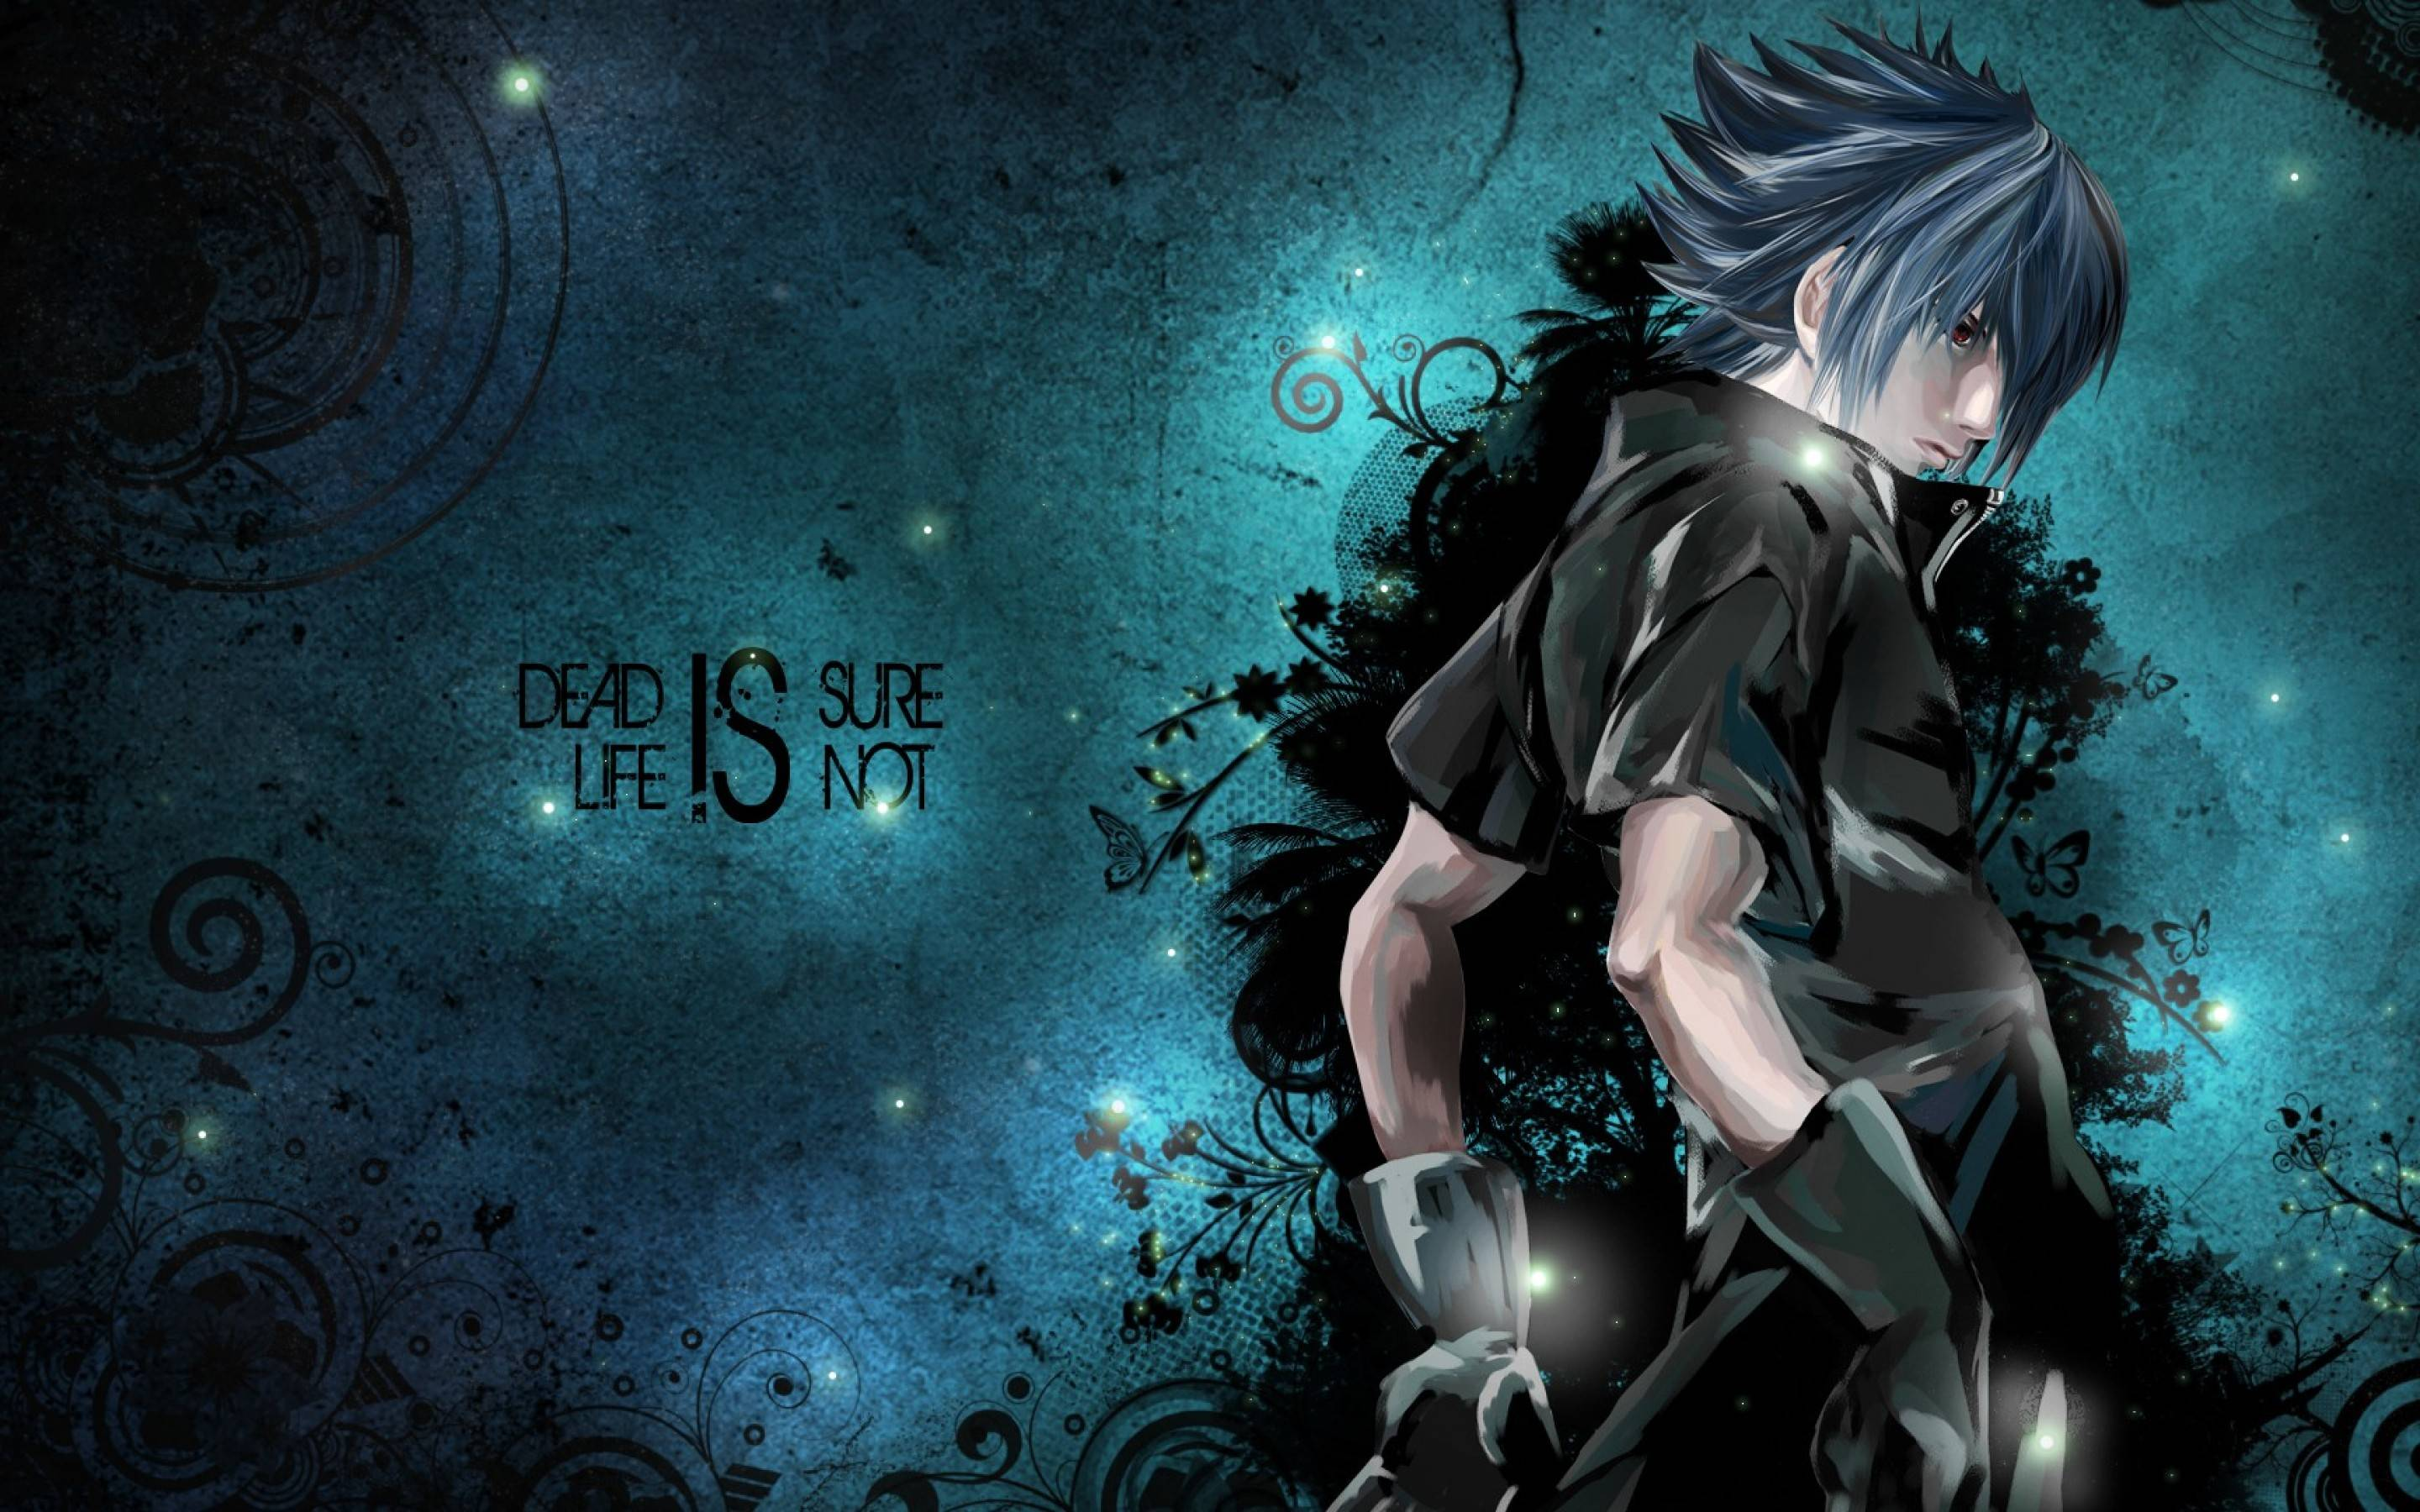 anime wallpaper 1920x1080 quotes - photo #47